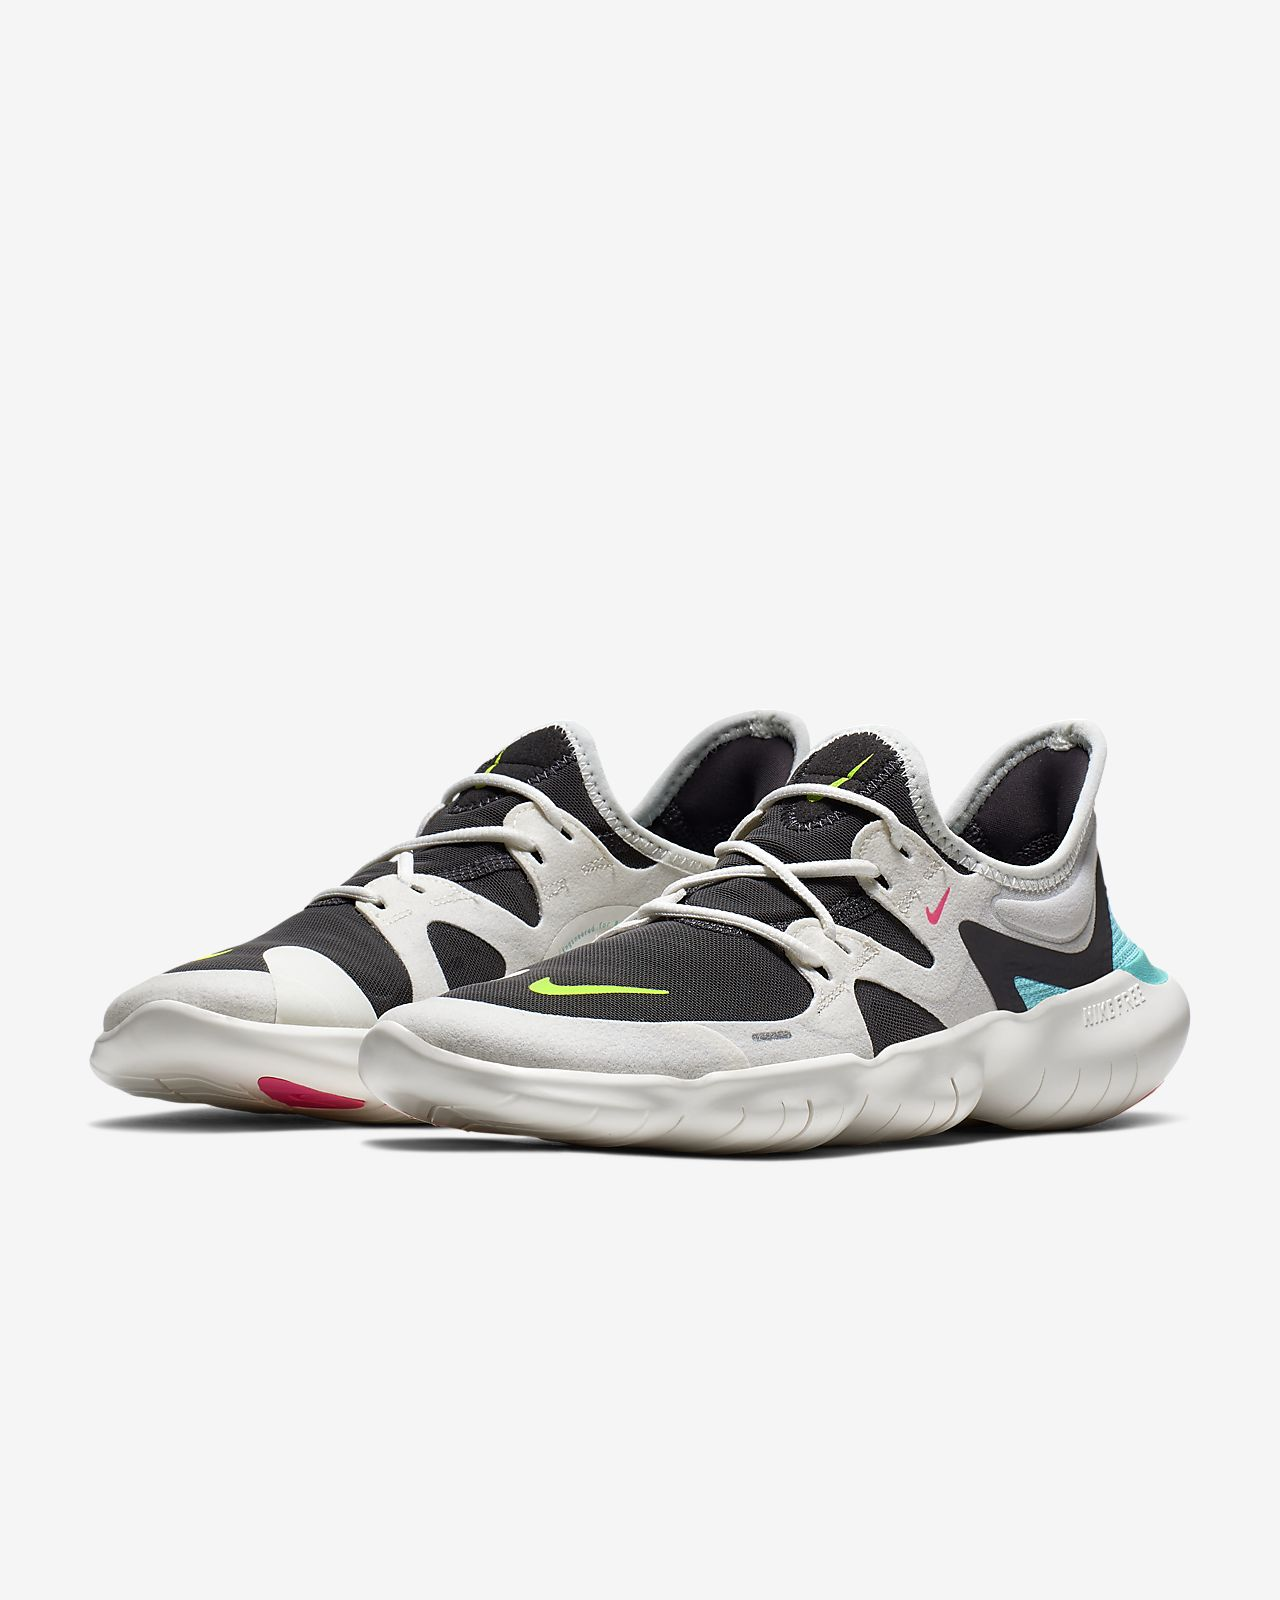 best sneakers 87a75 a8f13 ... Chaussure de running Nike Free RN 5.0 pour Femme